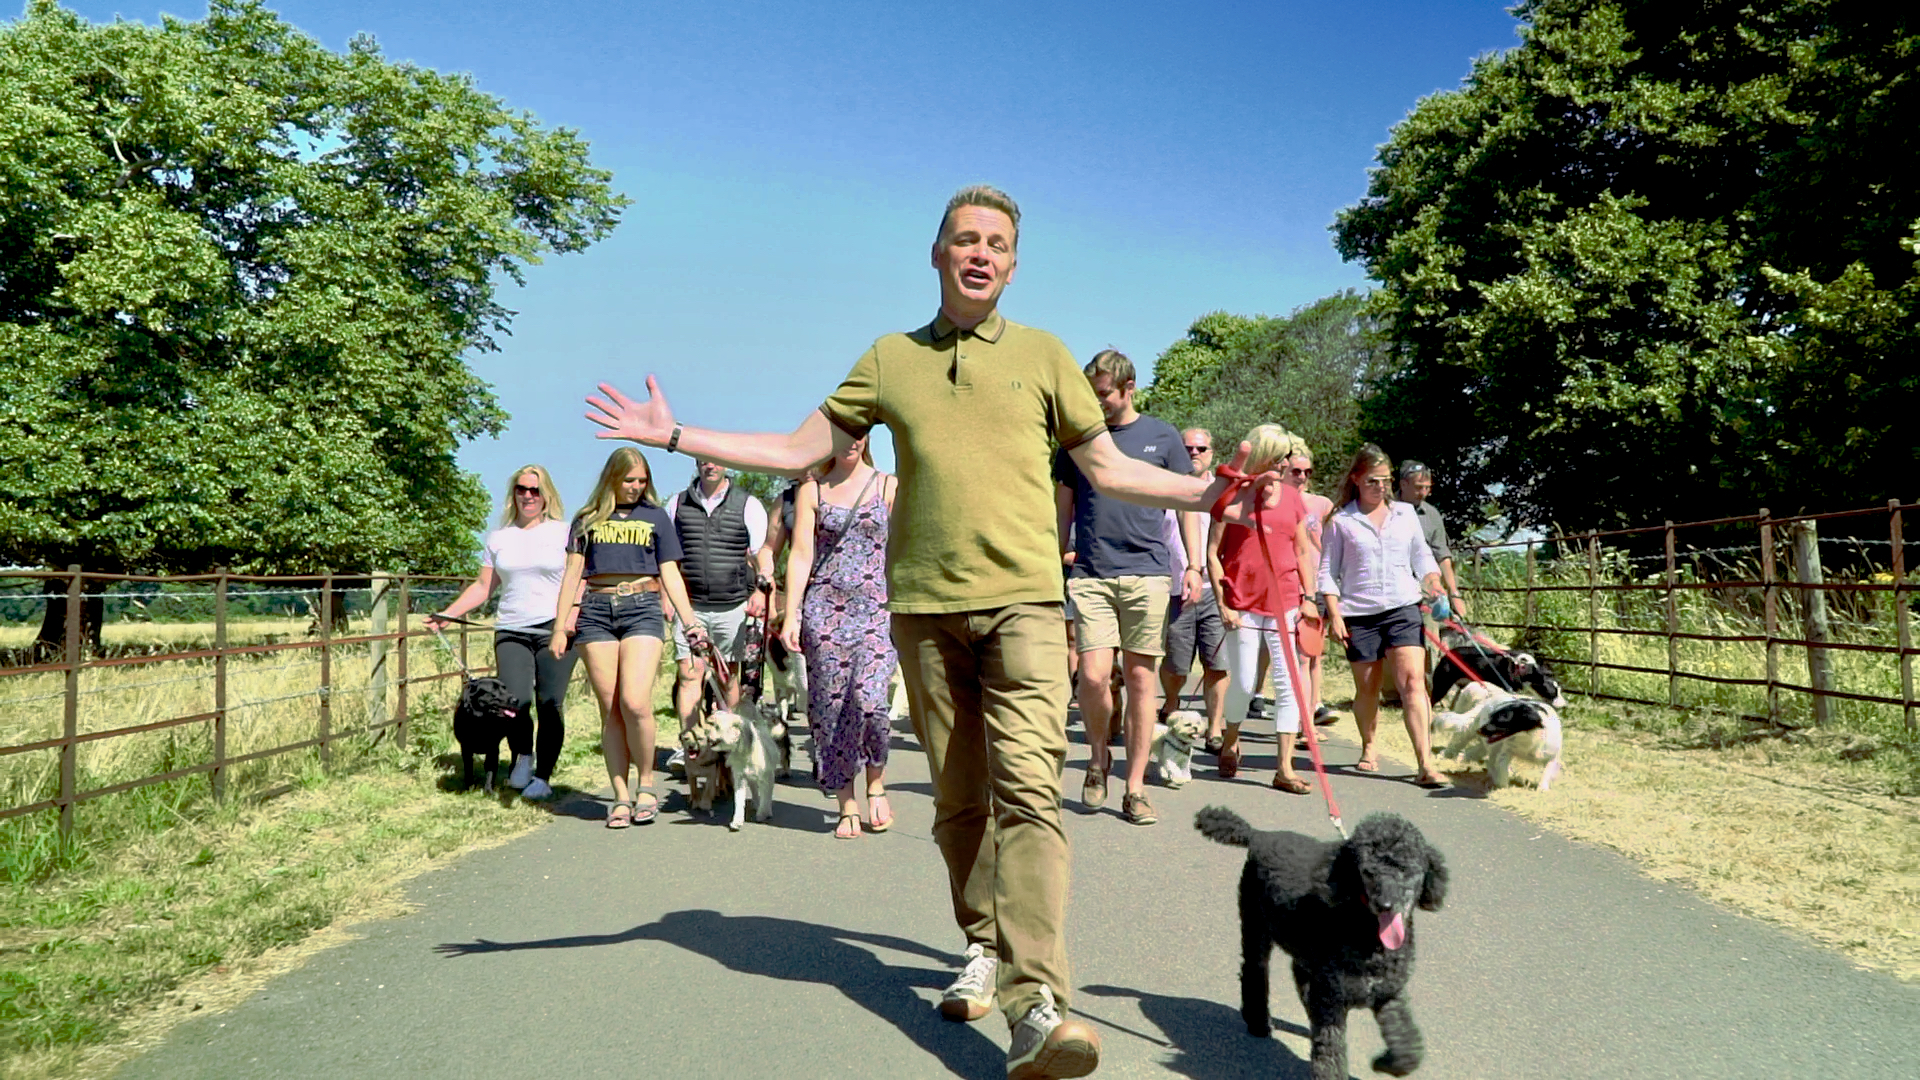 Countdown is on to first ever Dogstival with Chris Packham